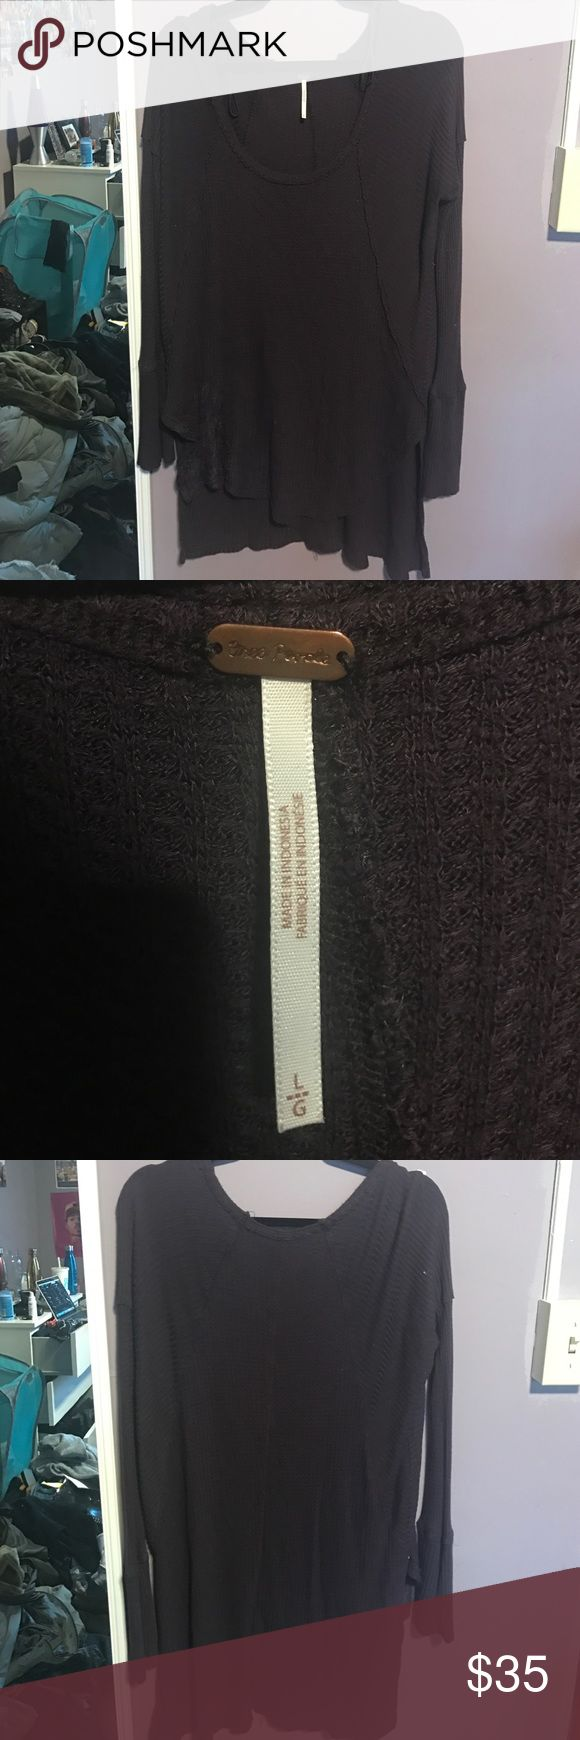 Free People Scoop Neck Thermal Comfy and cute Free People Thermal! Size large, plum color. Great for lounging or casual wear! Free People Sweaters Crew & Scoop Necks